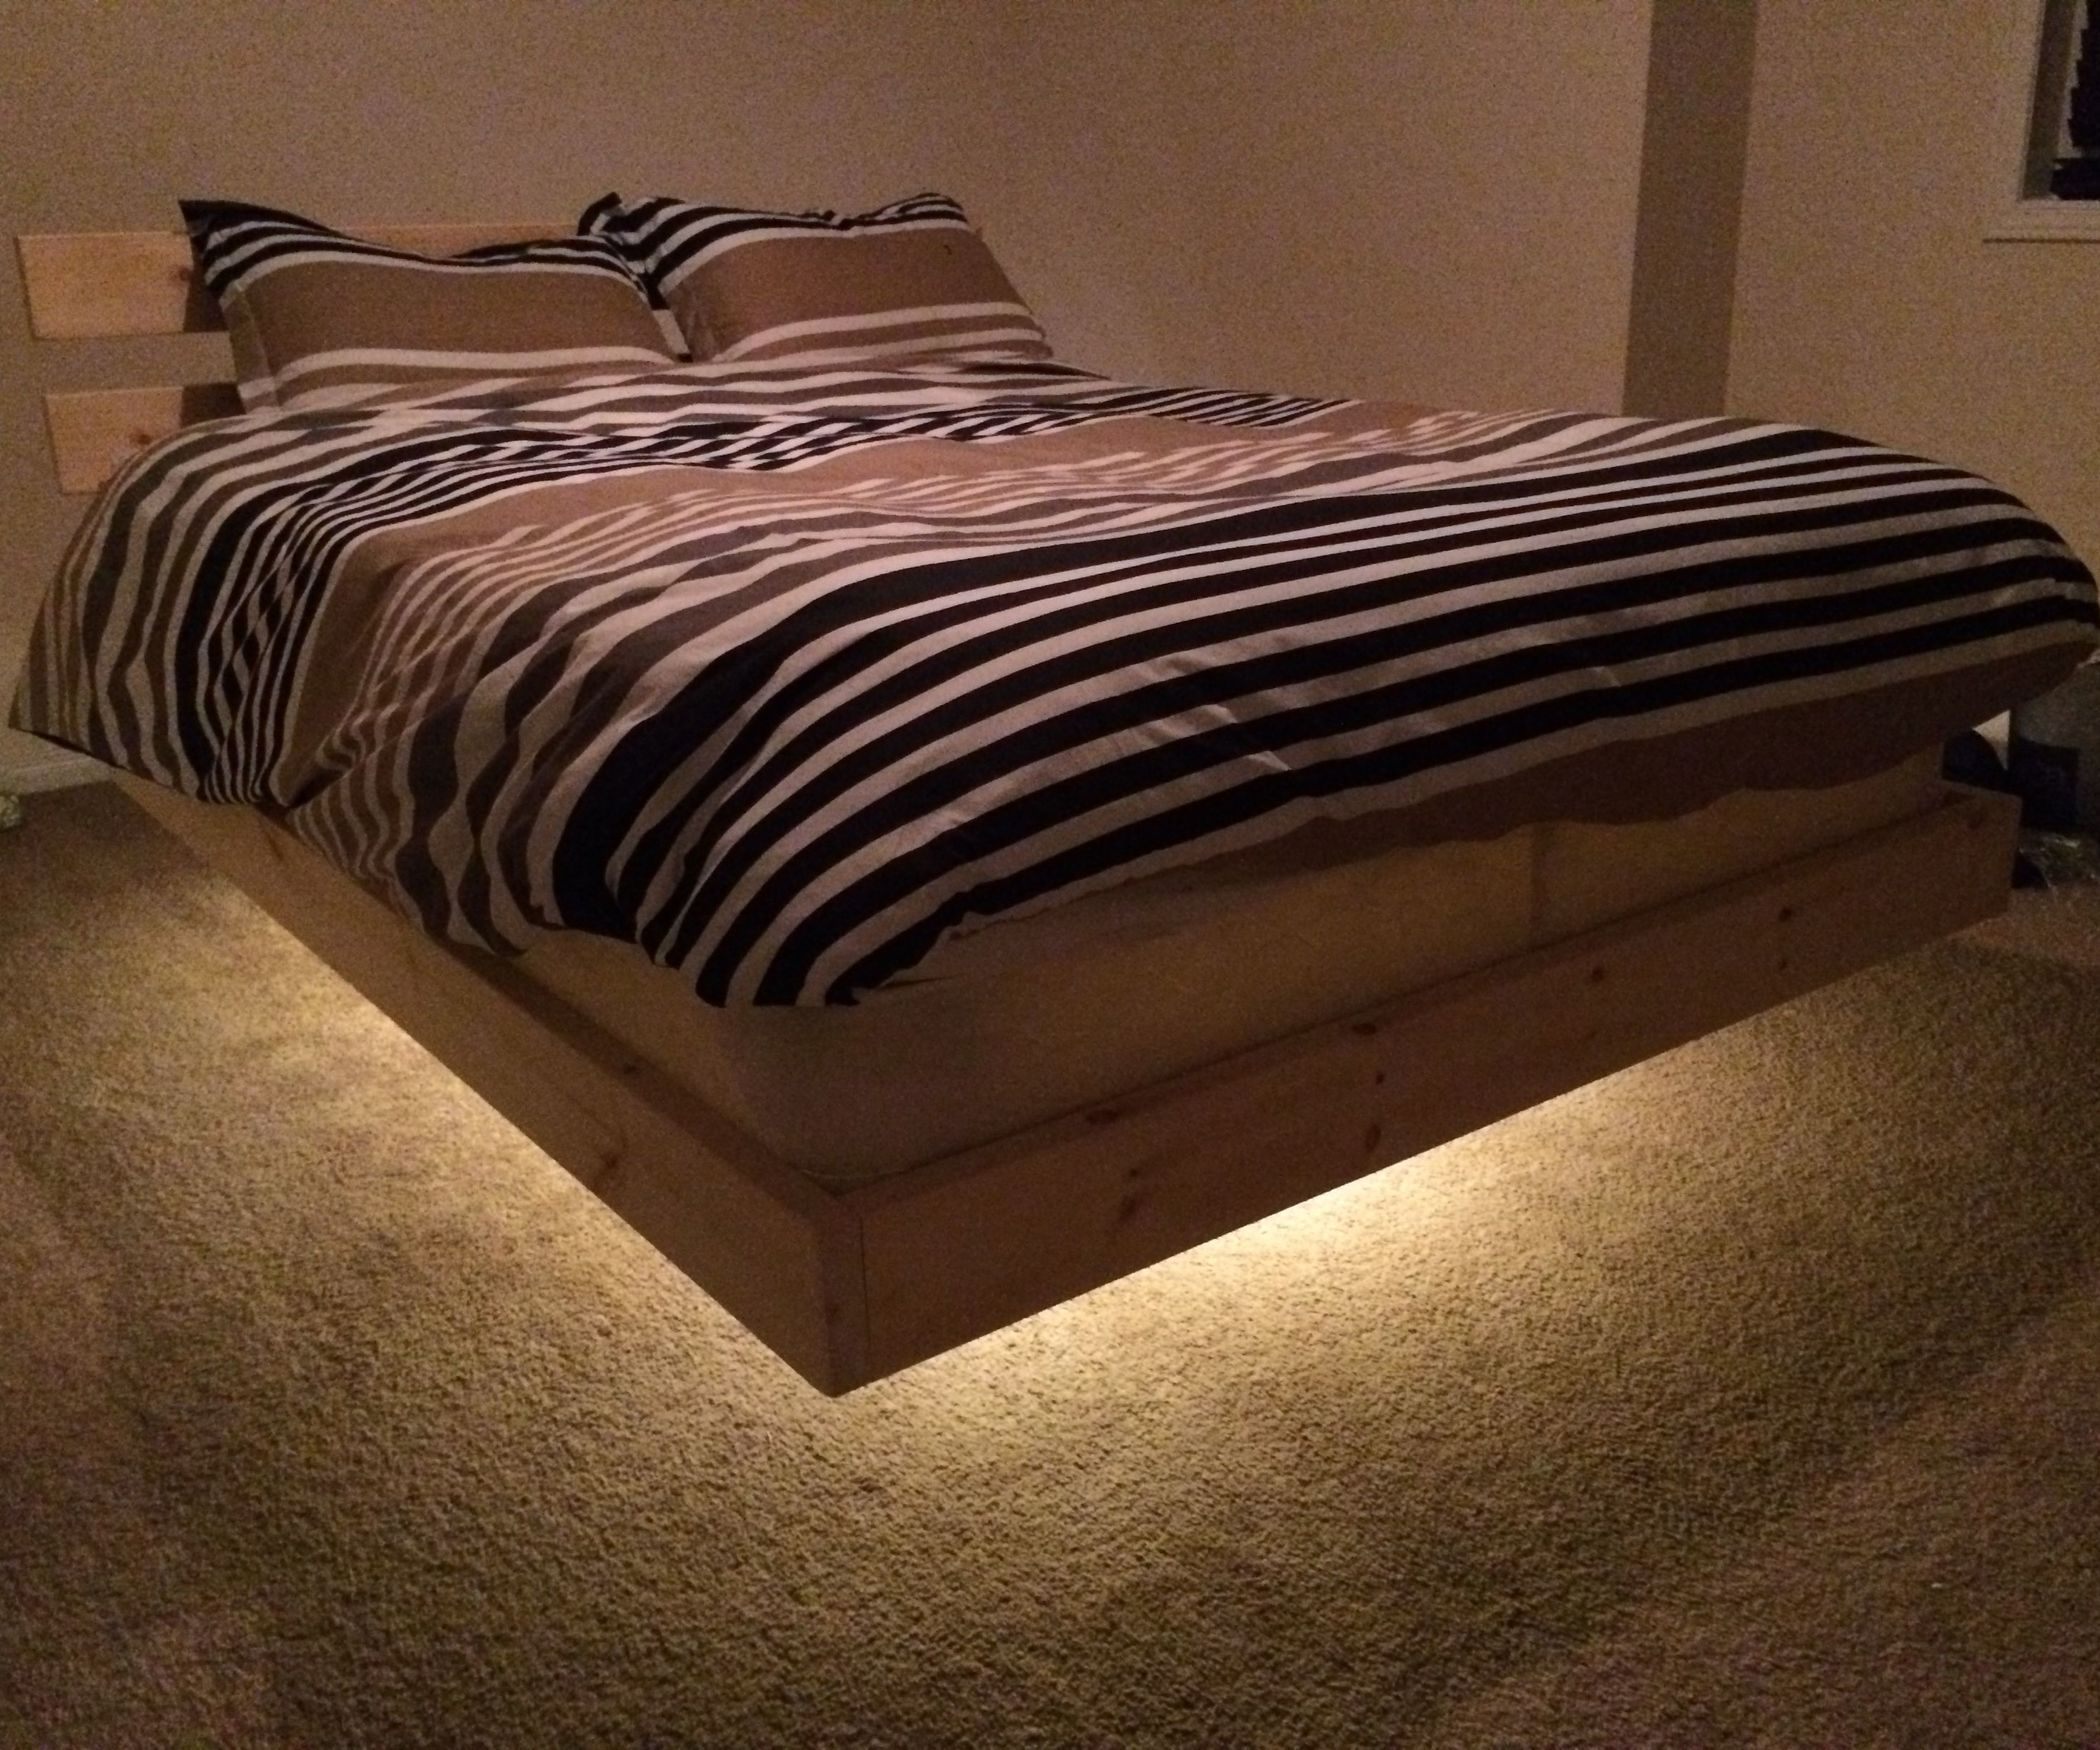 Groundfx Bed Floating Bed Frame Woodworking Projects Bed Bed Frame